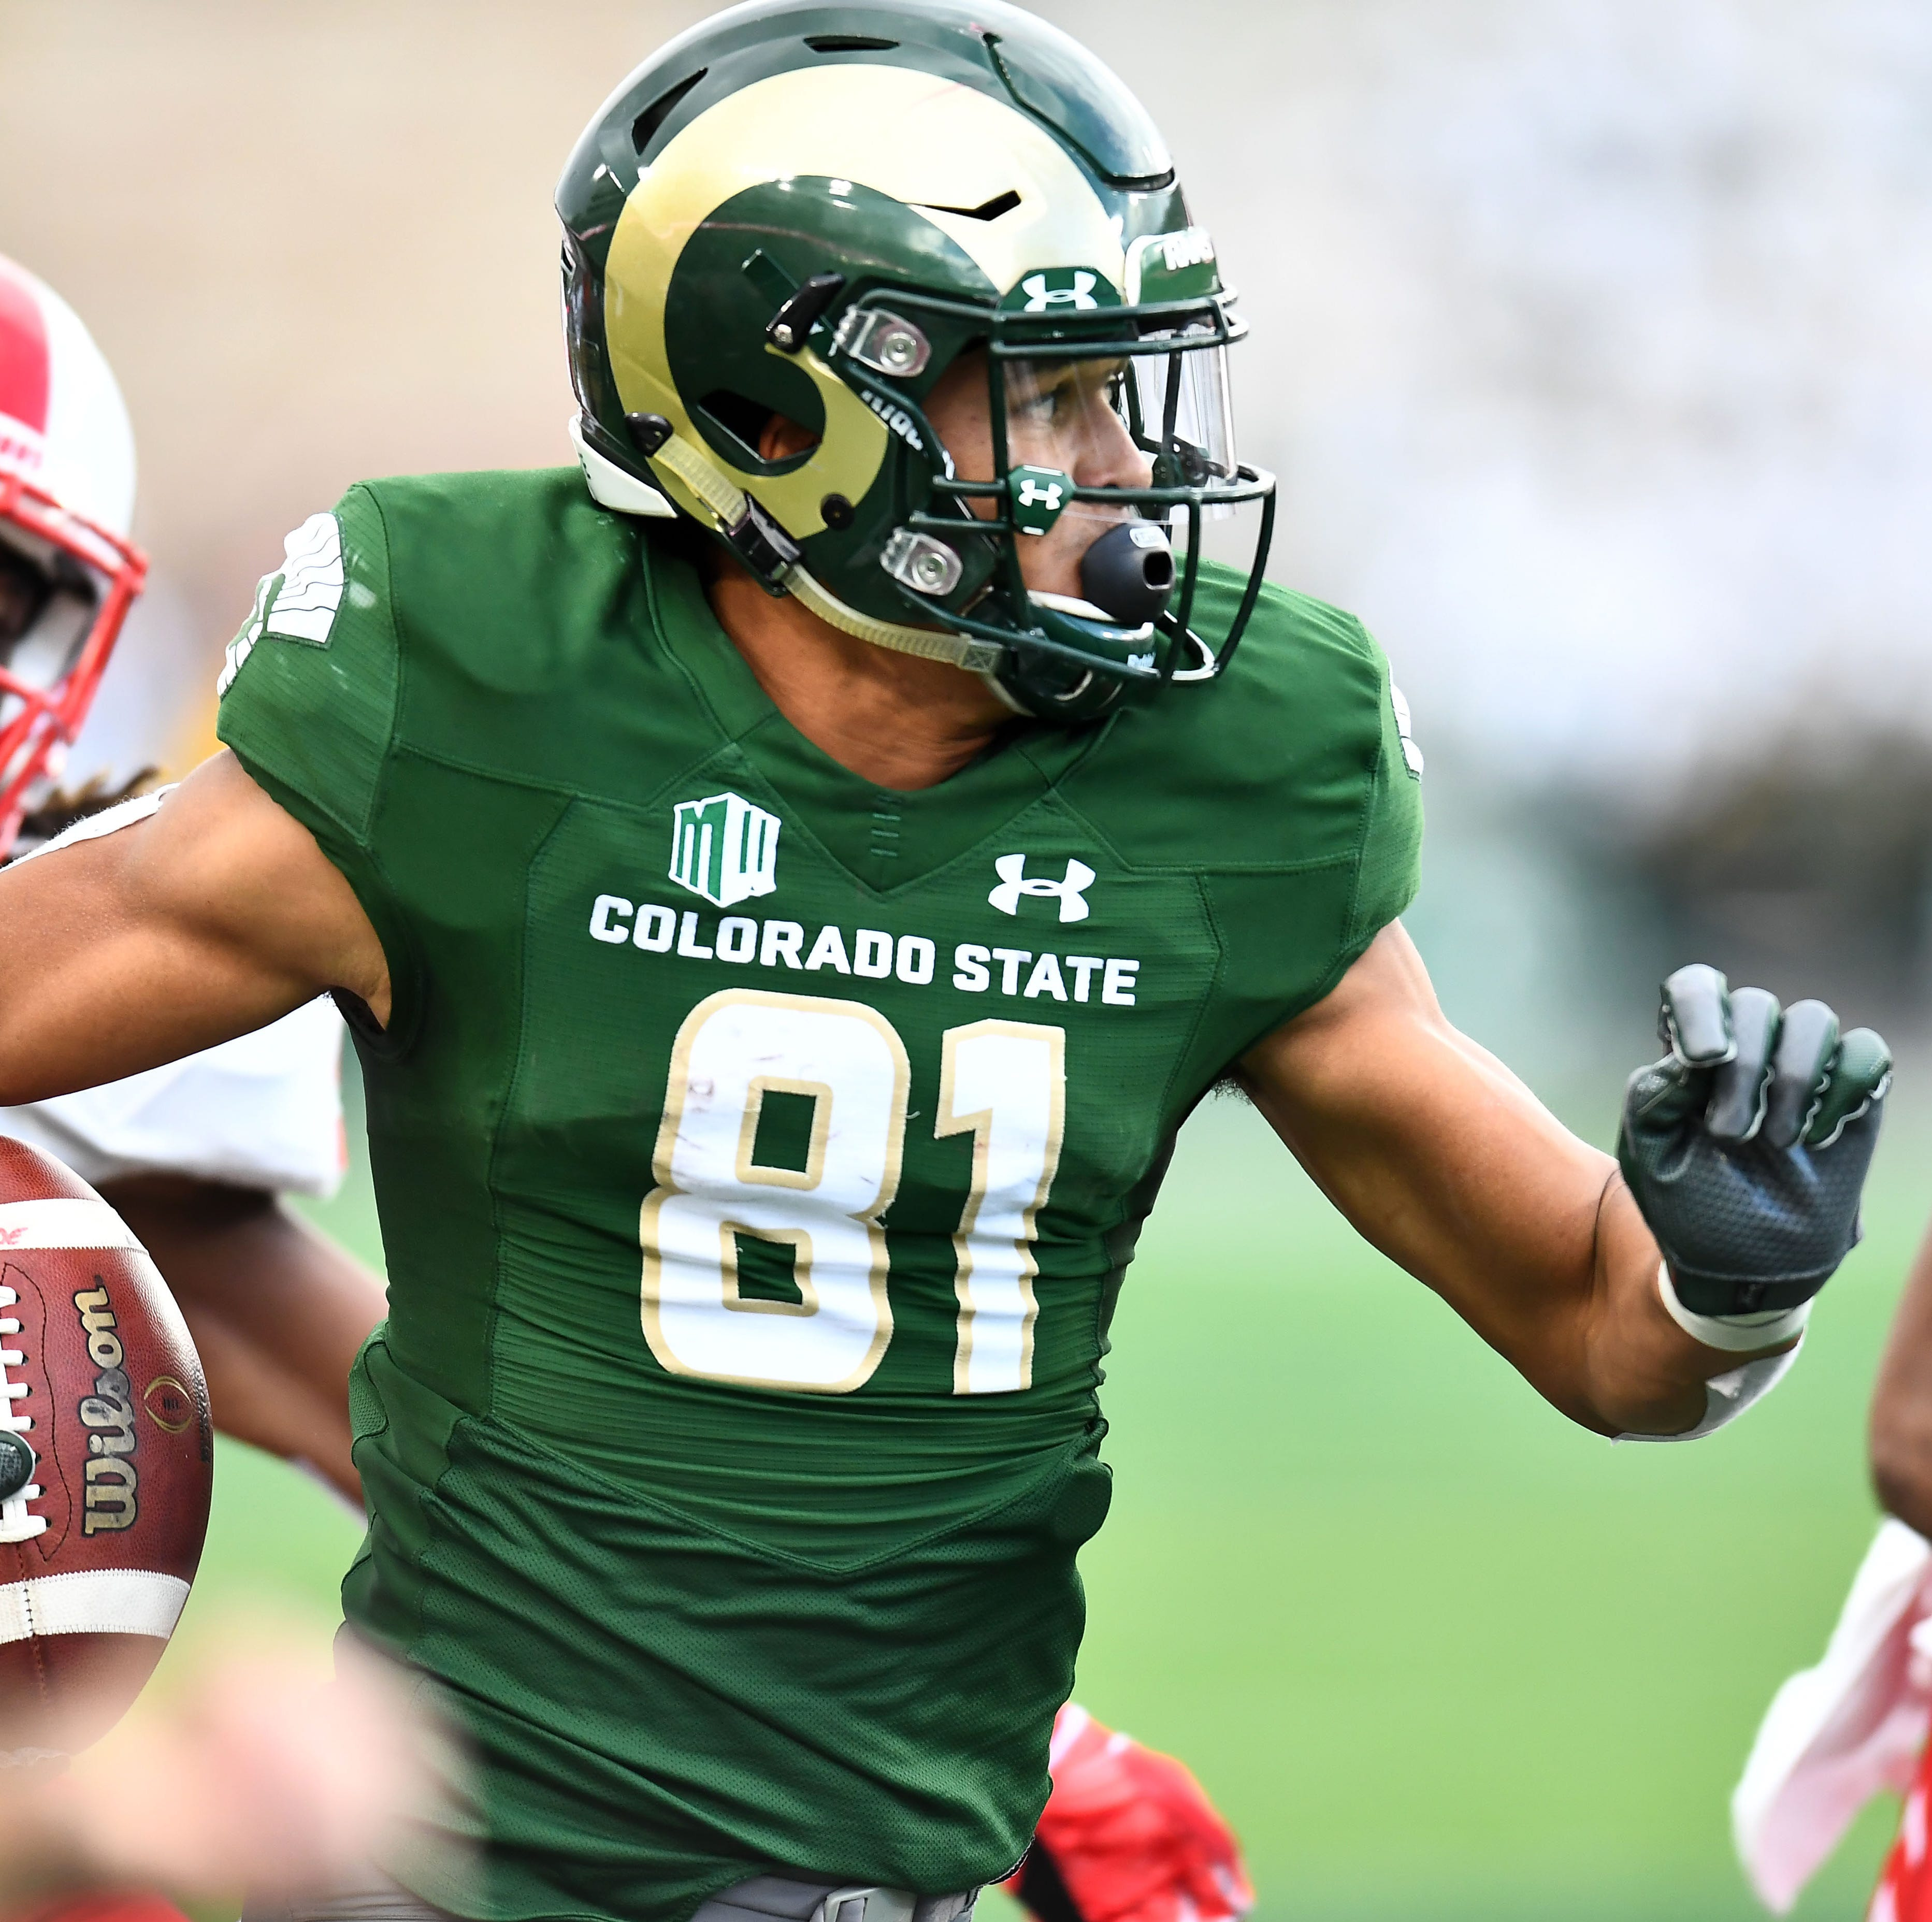 2019 NFL draft: CSU football wide receiver Bisi Johnson selected by Minnesota Vikings